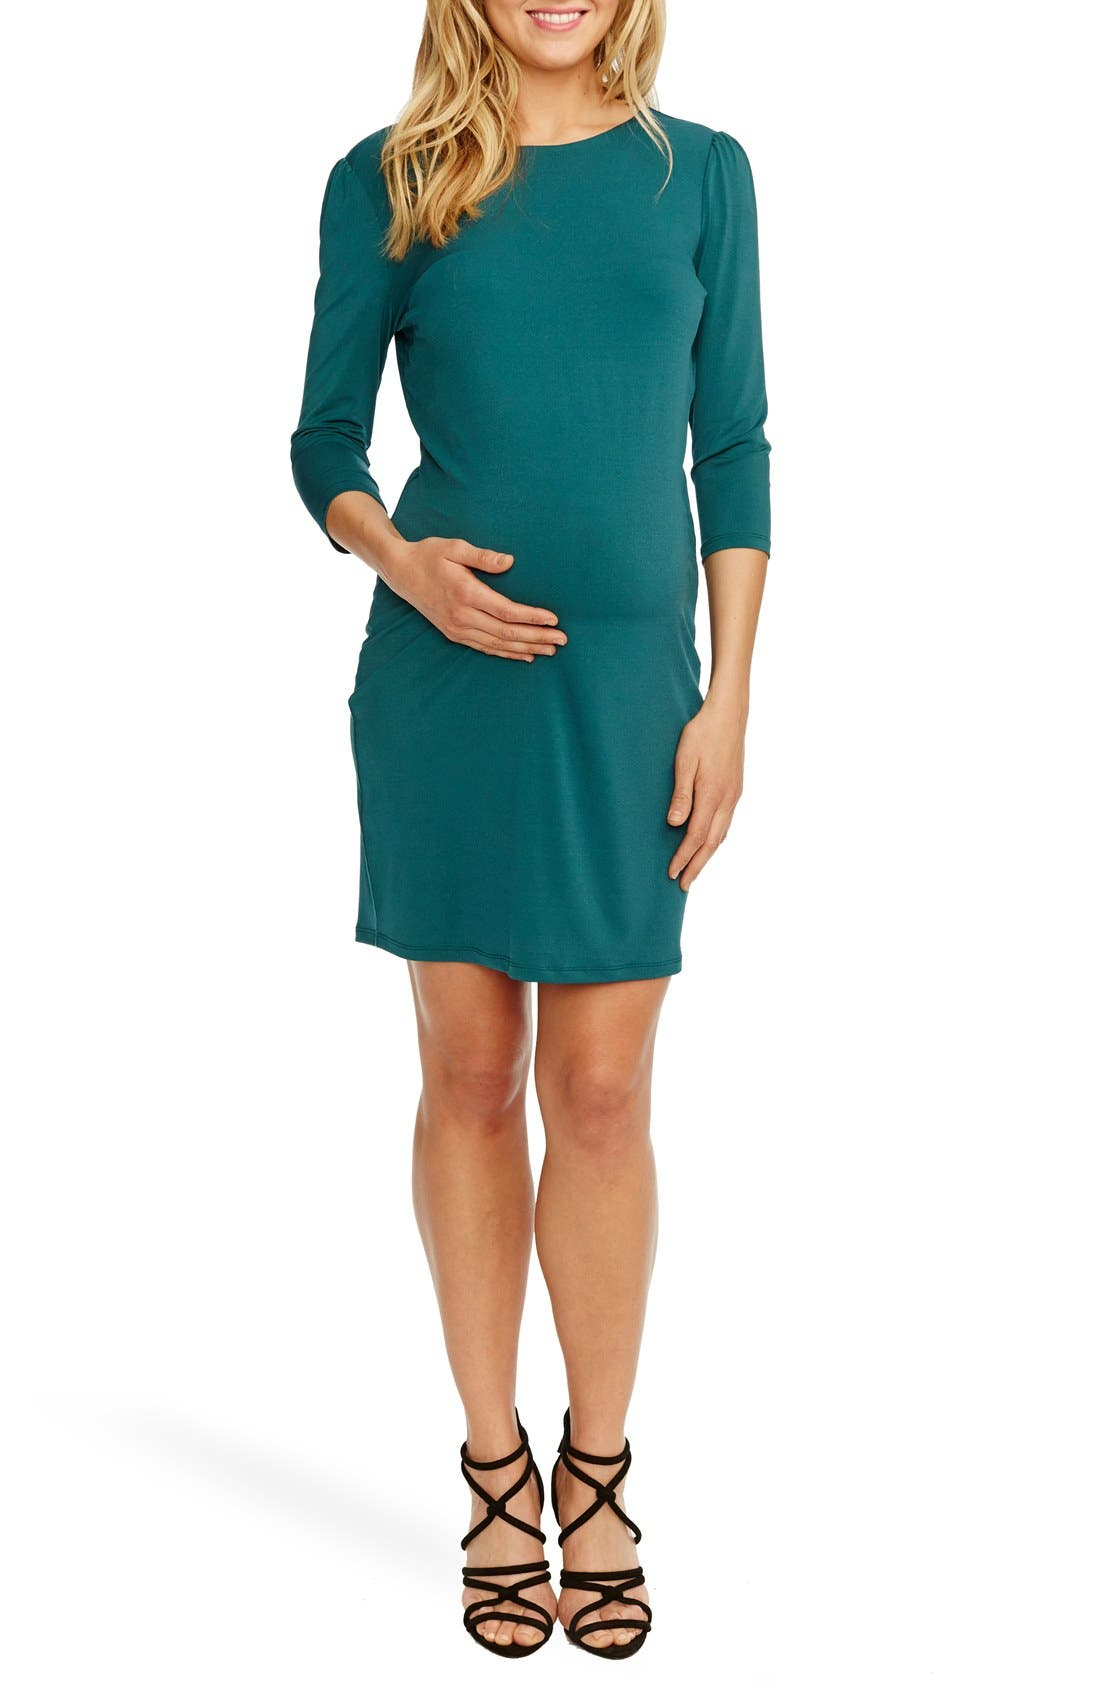 Alternate Image 1 Selected - Rosie Pope 'Audra' Maternity Dress